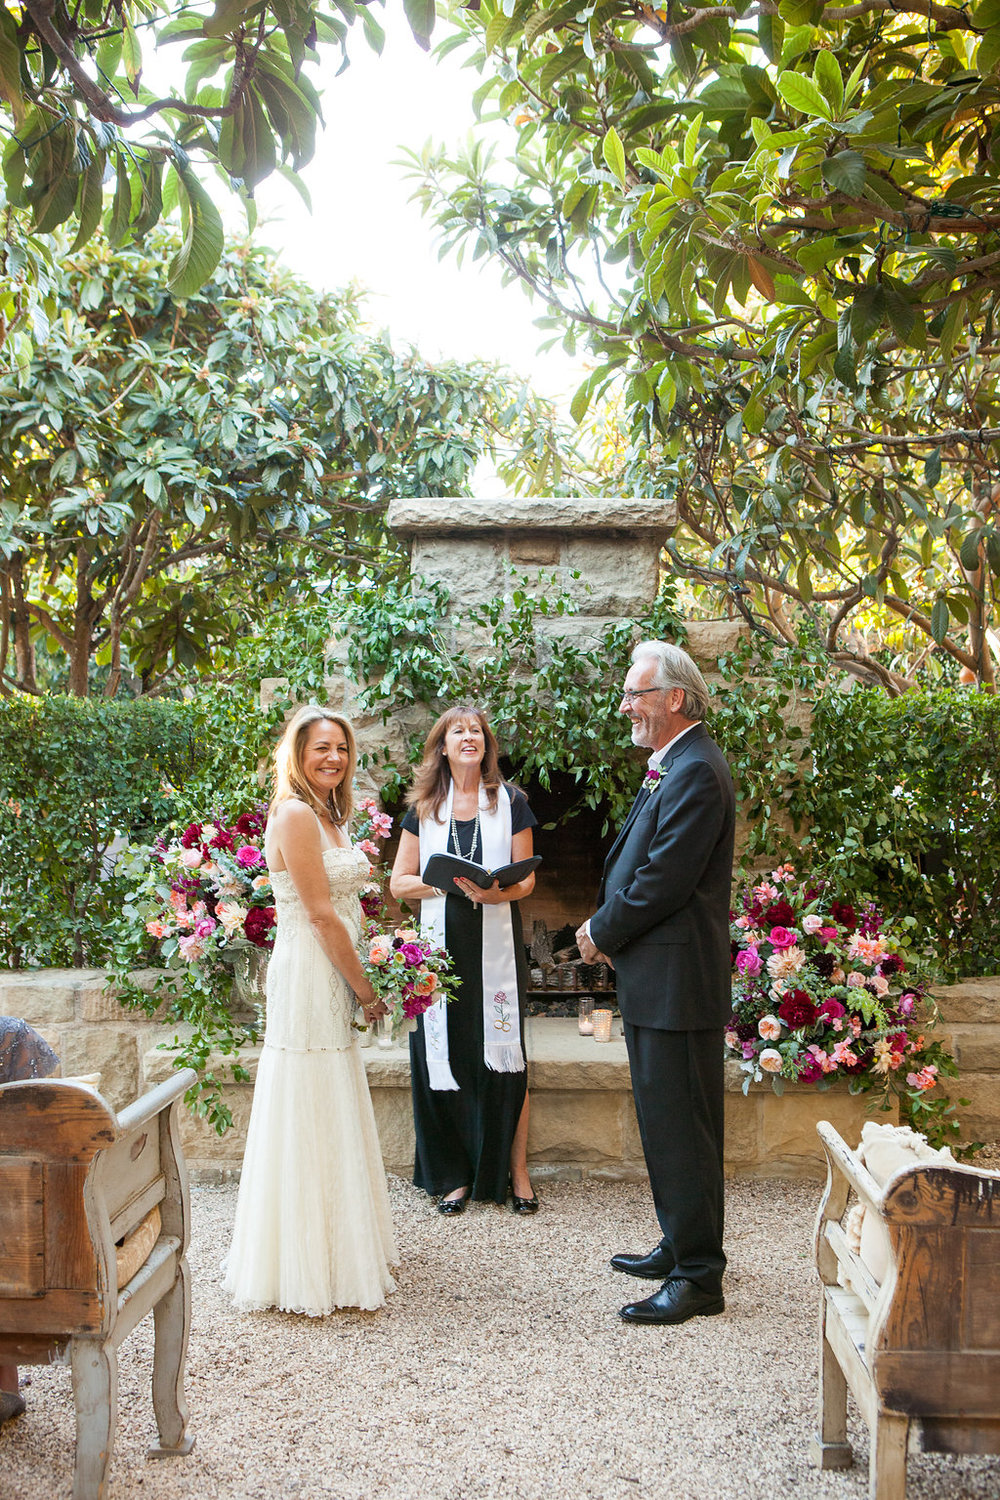 SantaBarbaraWeddingStyle.com | Barbra Mosouris | Cody Floral | San Ysidro Ranch | Elopement | Melissa Musgrove | Wedding Floral